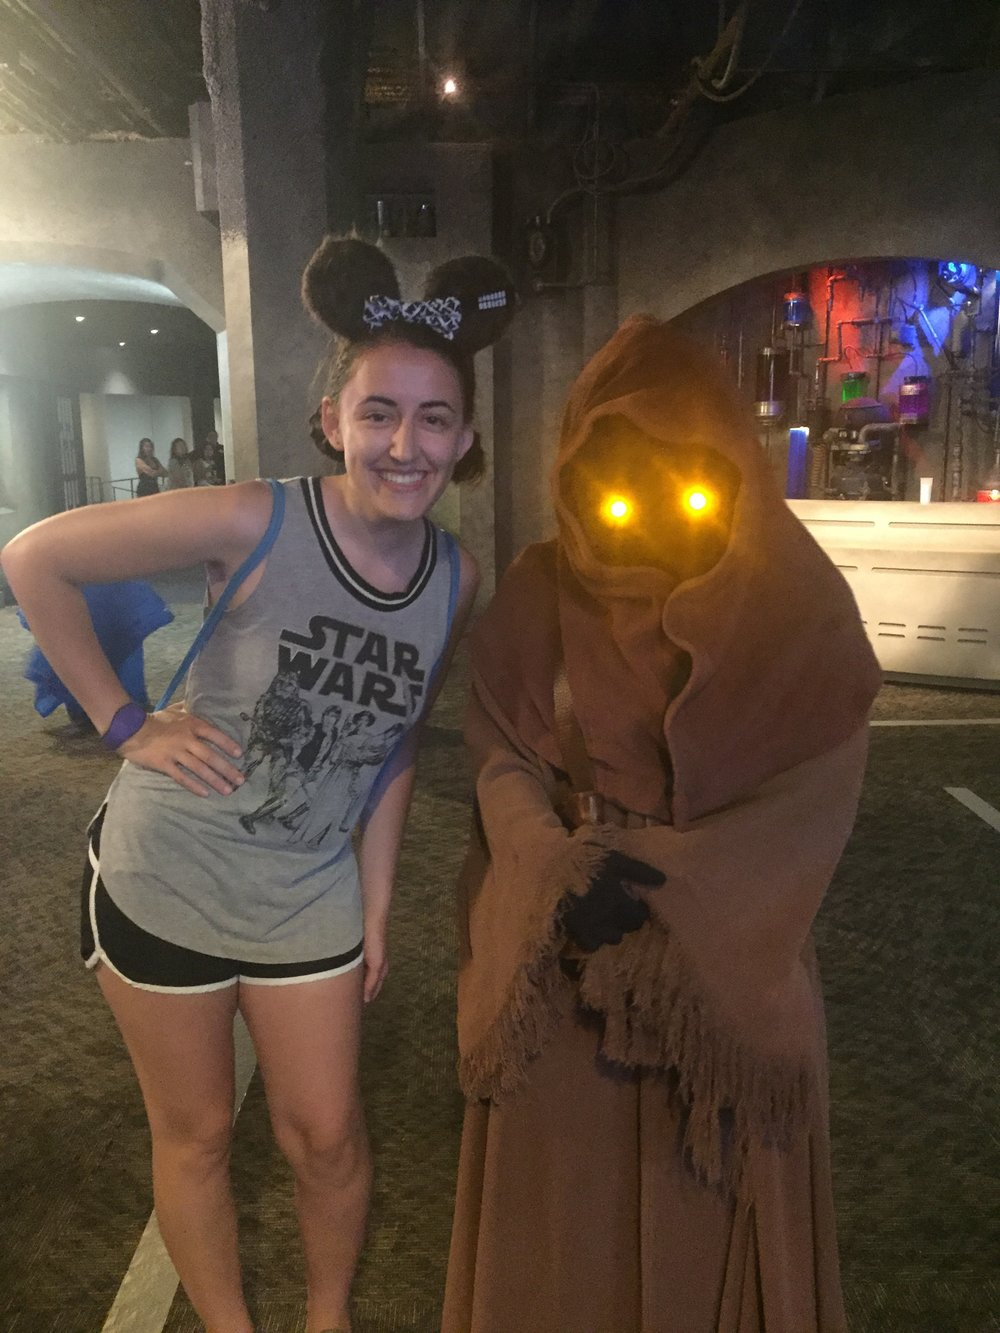 Some of my favorite surprise characters to meet are the jawas that hang out around the Star Wars Launch Bay. Watch your pockets though! They'll steal anything they can sell!